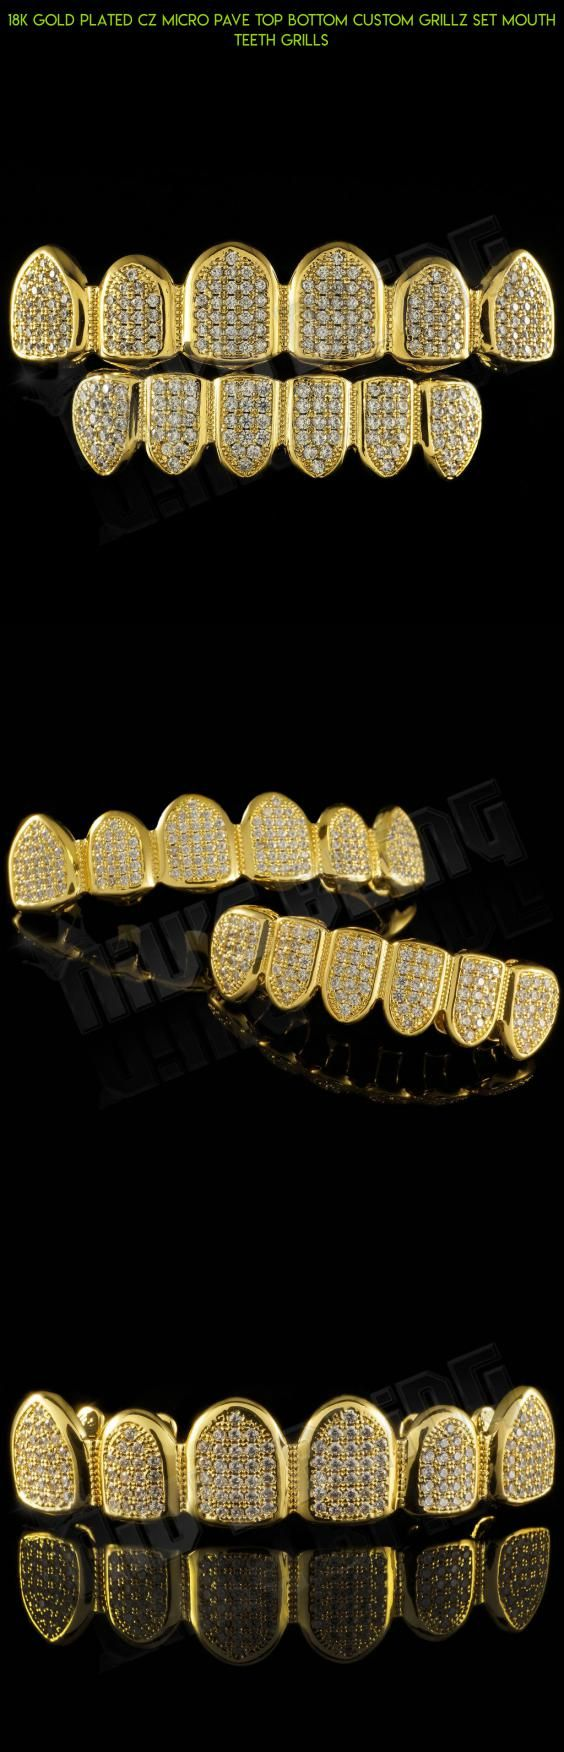 18K Gold Plated CZ Micro Pave Top Bottom CUSTOM GRILLZ SET Mouth Teeth Grills #grills #kit #tech #bottom #technology #products #fpv #camera #gadgets #drone #plans #parts #shopping #teeth #racing